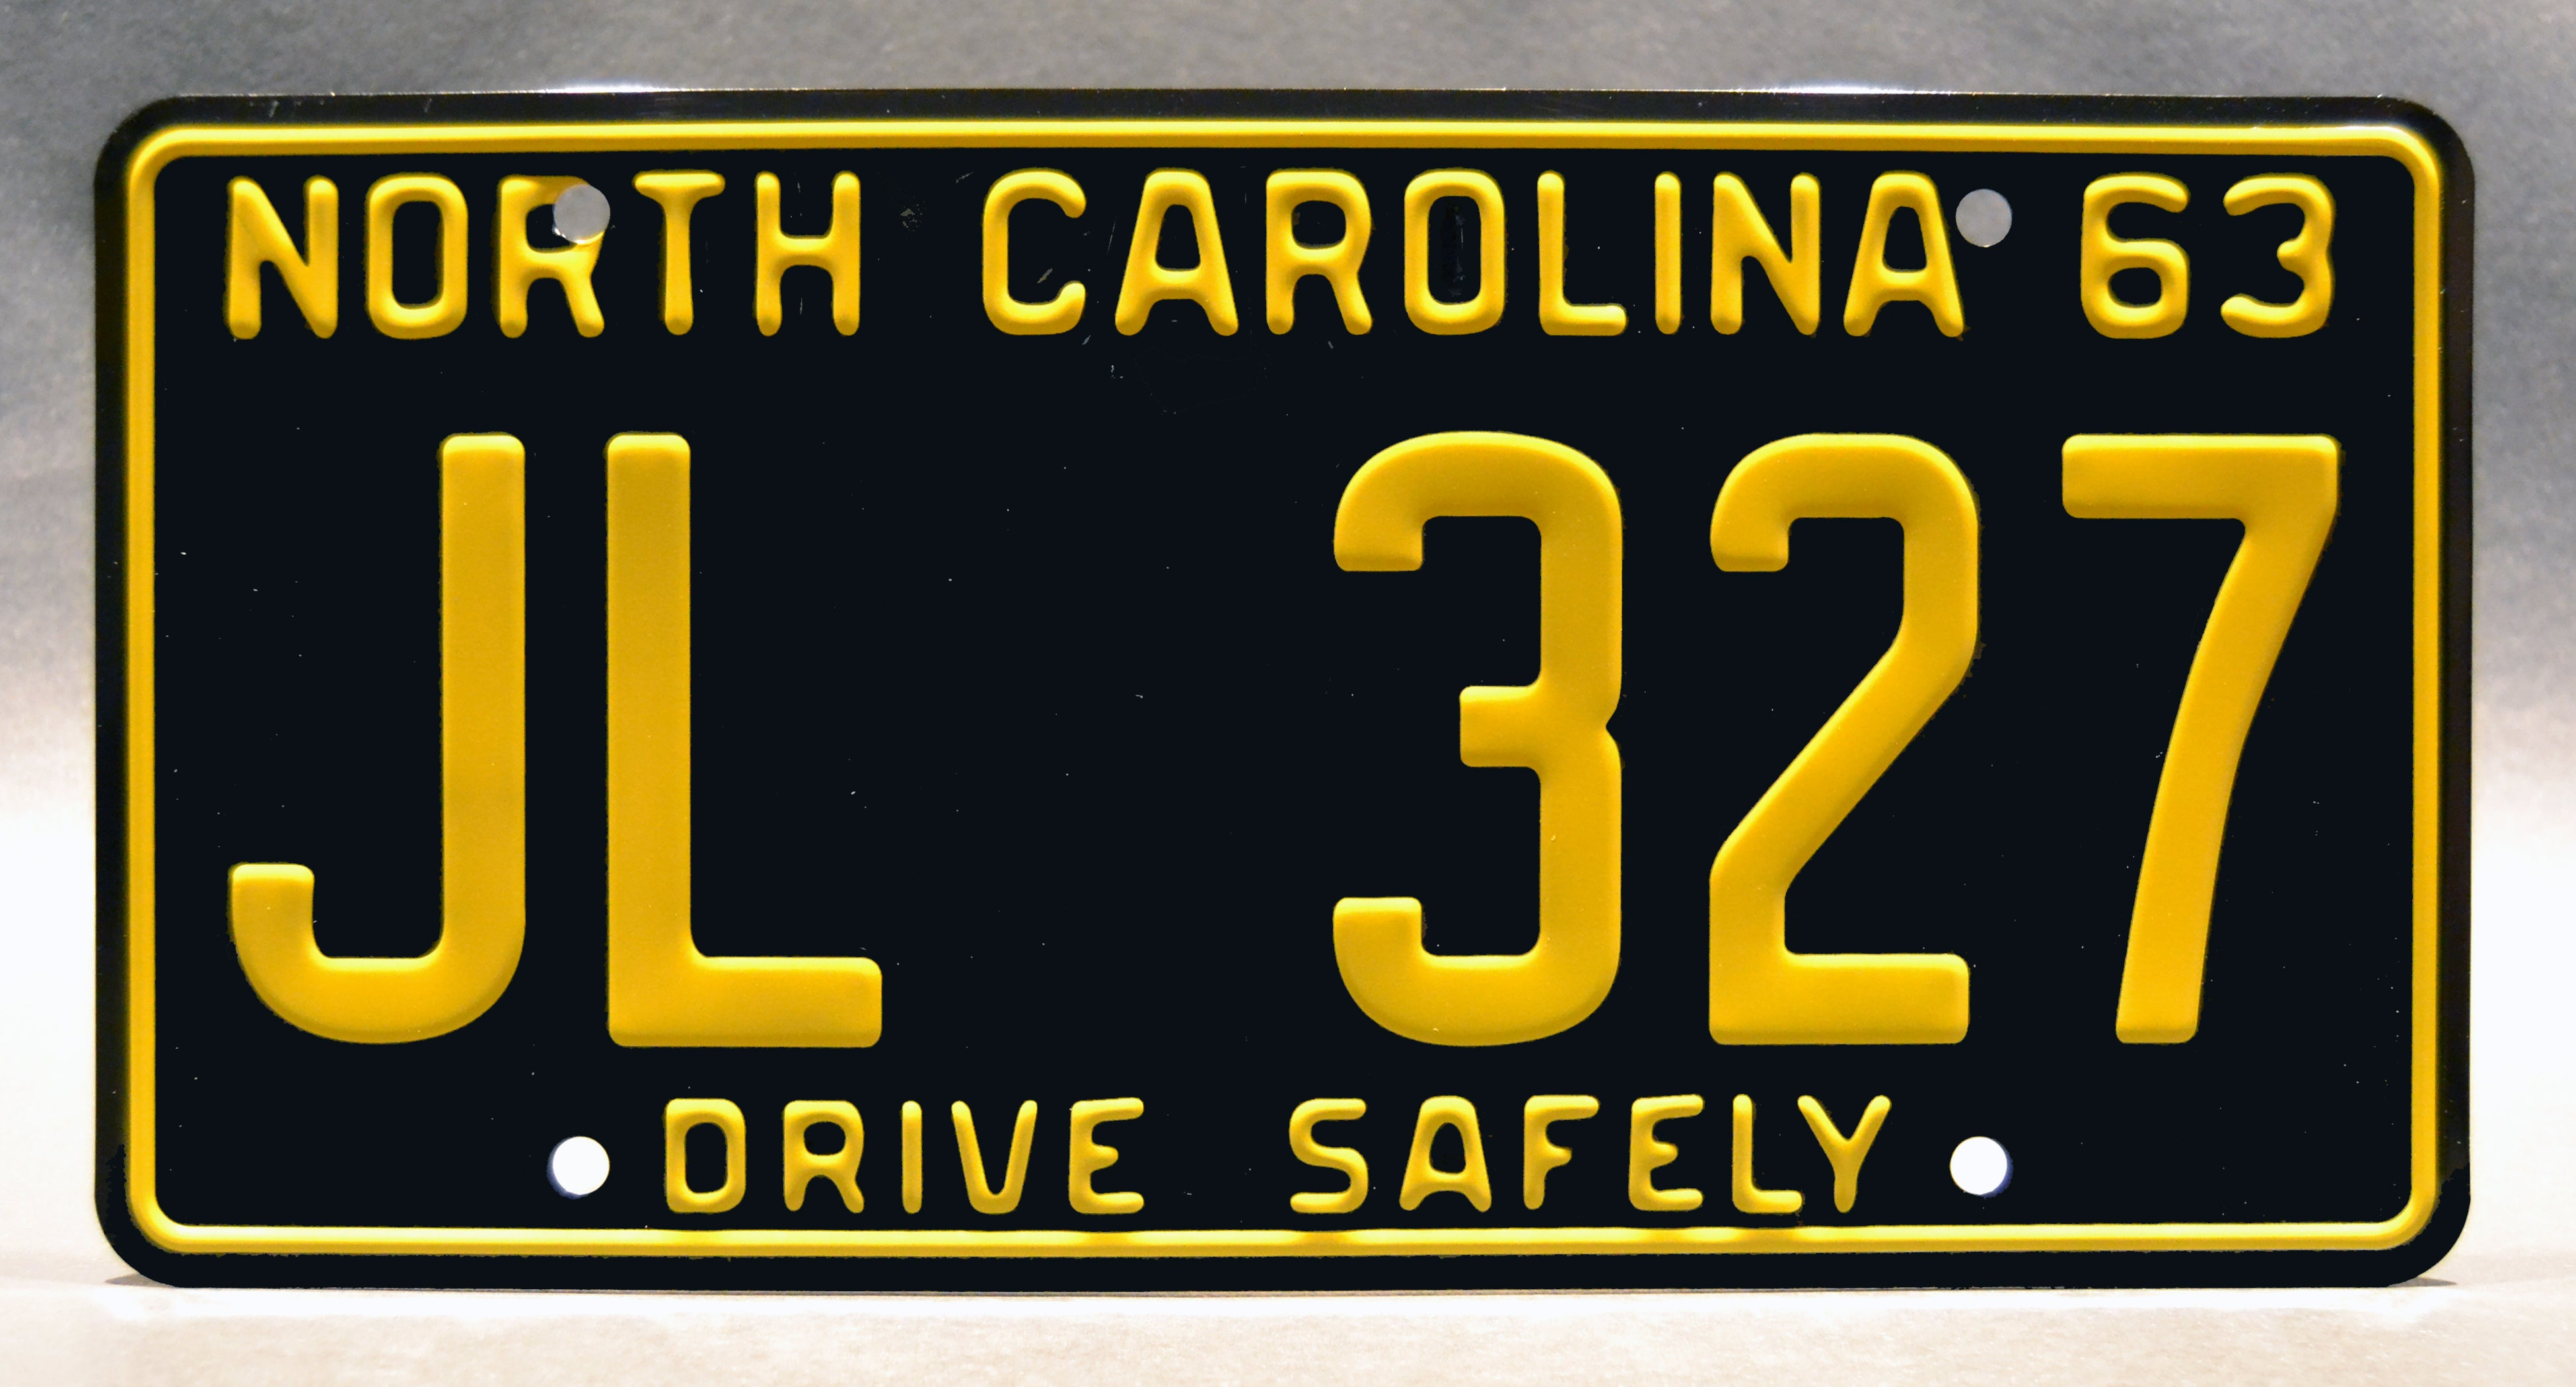 The Andy Griffith Show Mayberry Police Car Jl 327 Metal Stamped Replica Prop License Plate Celebrity Machines